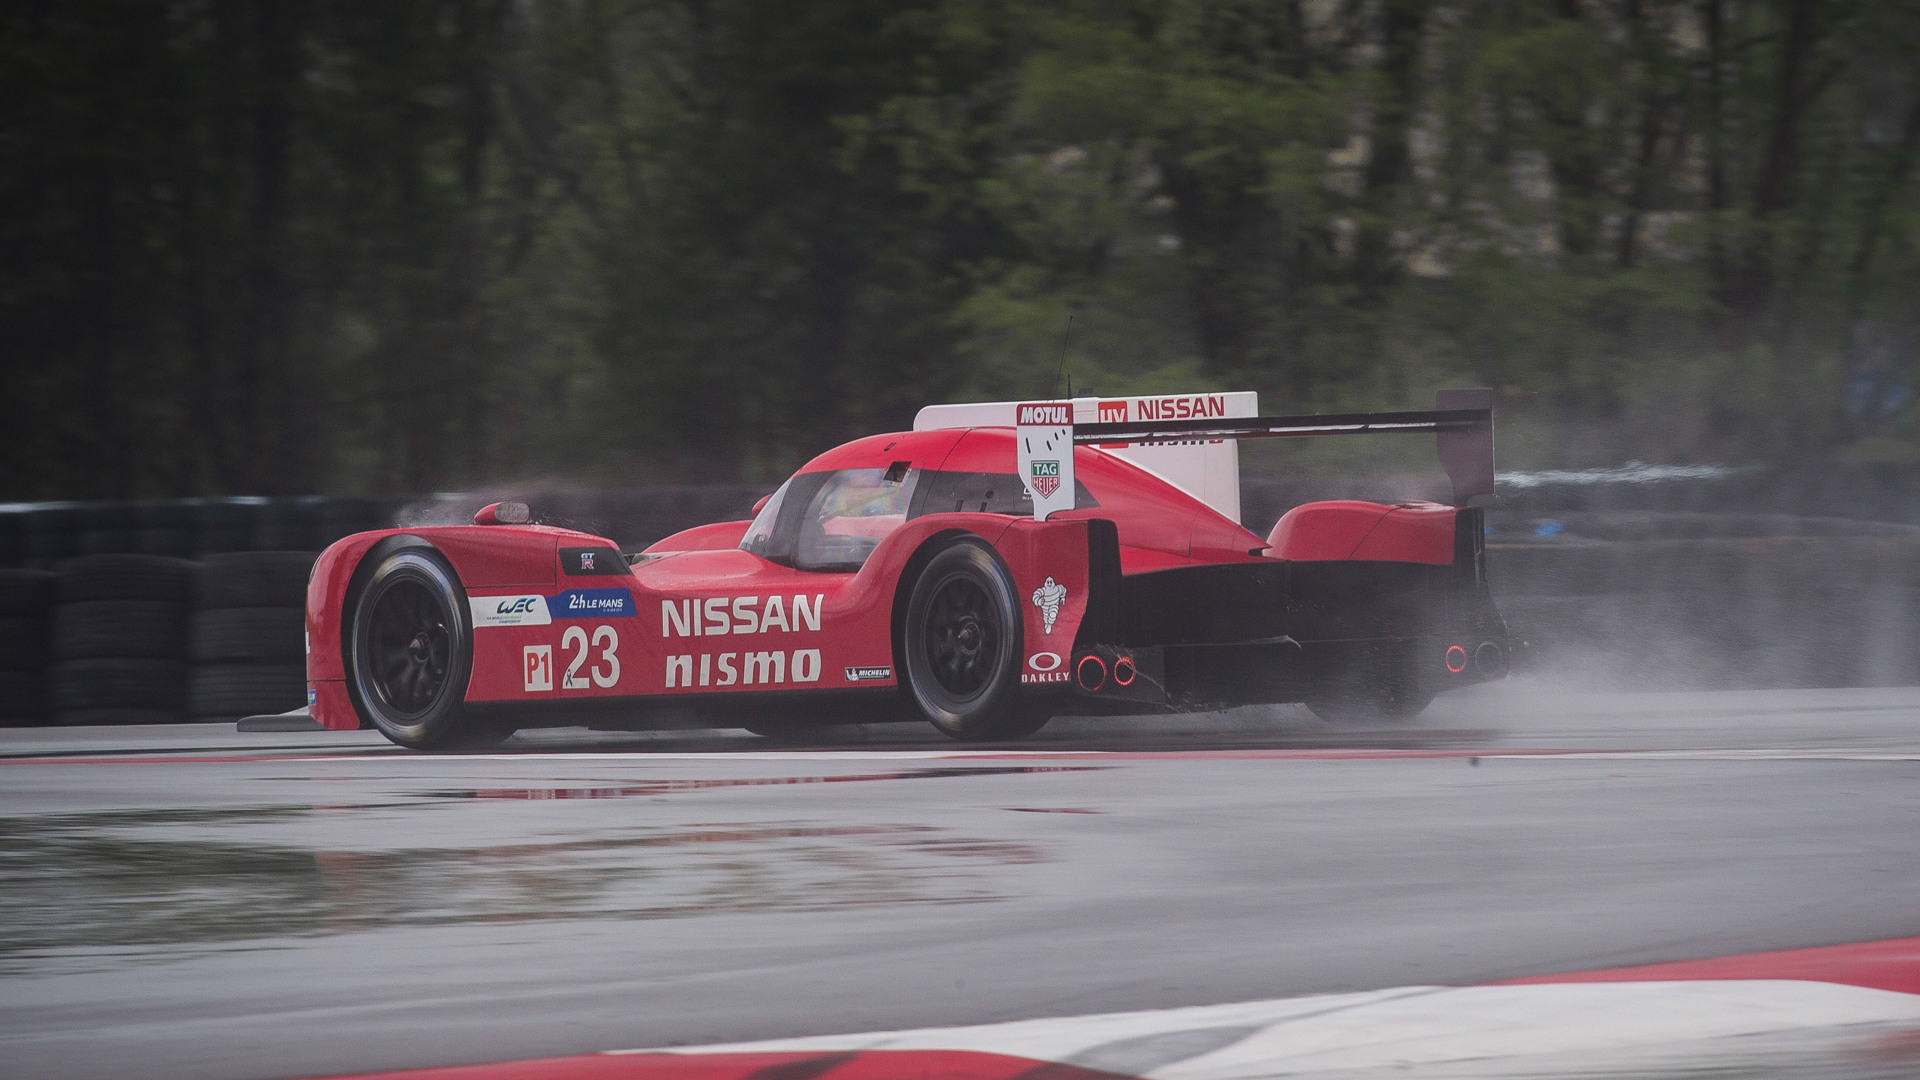 2015 Nissan GT-R LM NISMO LMP1 testing at NCM Motorsports Park in Bowling Green, Kentucky